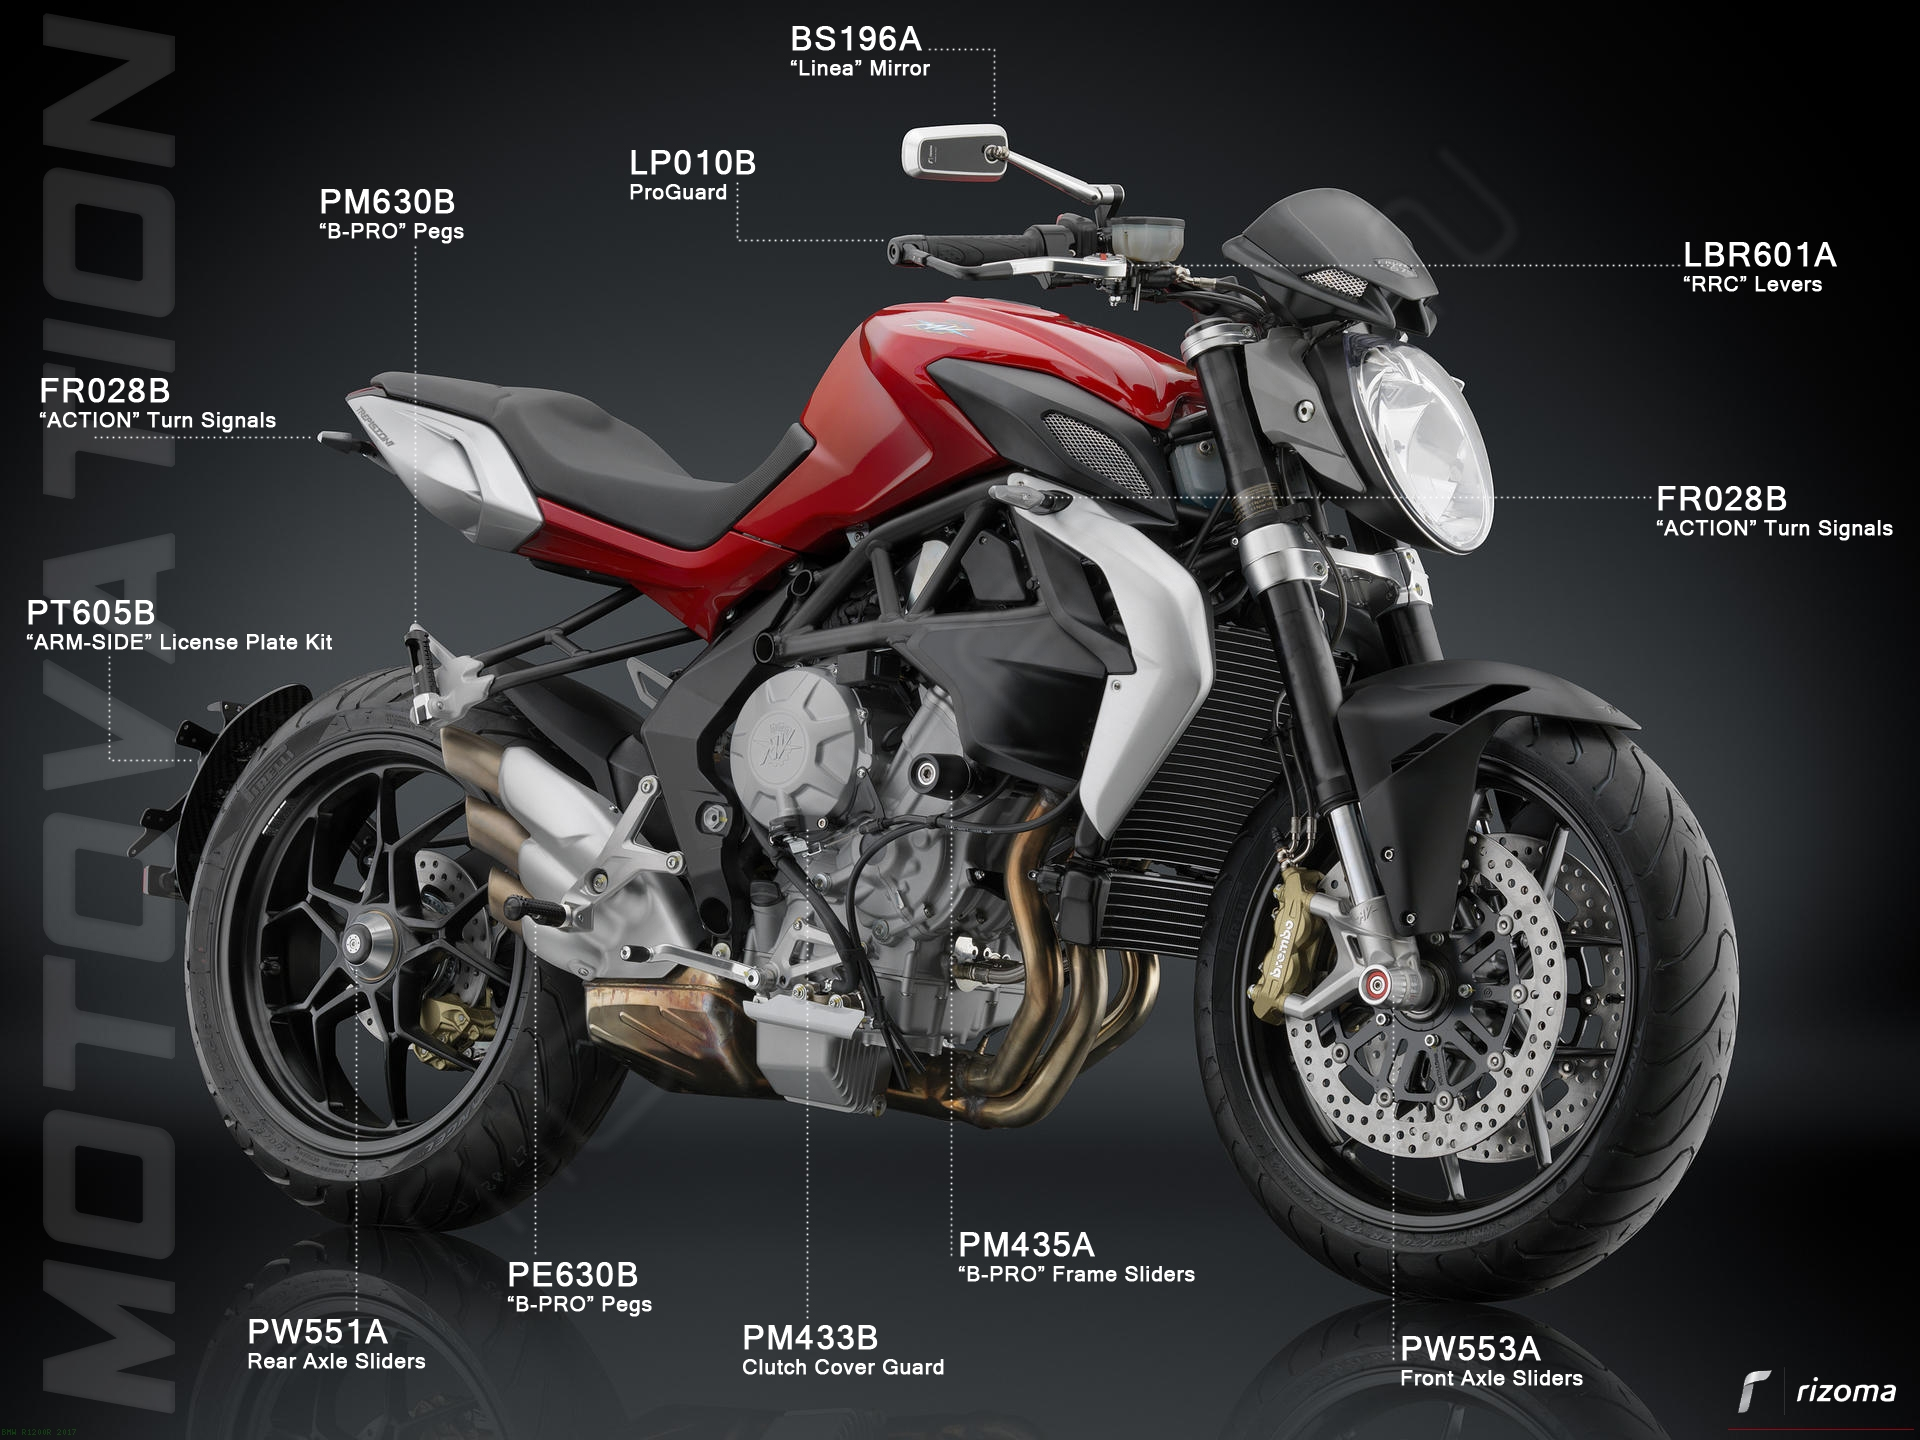 mv%20agusta%20brutale%20675%20right%20side%20full%20diagram%20FULL_3-m_m_y-BMW-R1200R-2017 Extraordinary Bmw R 1200 R Street Fighter Cars Trend